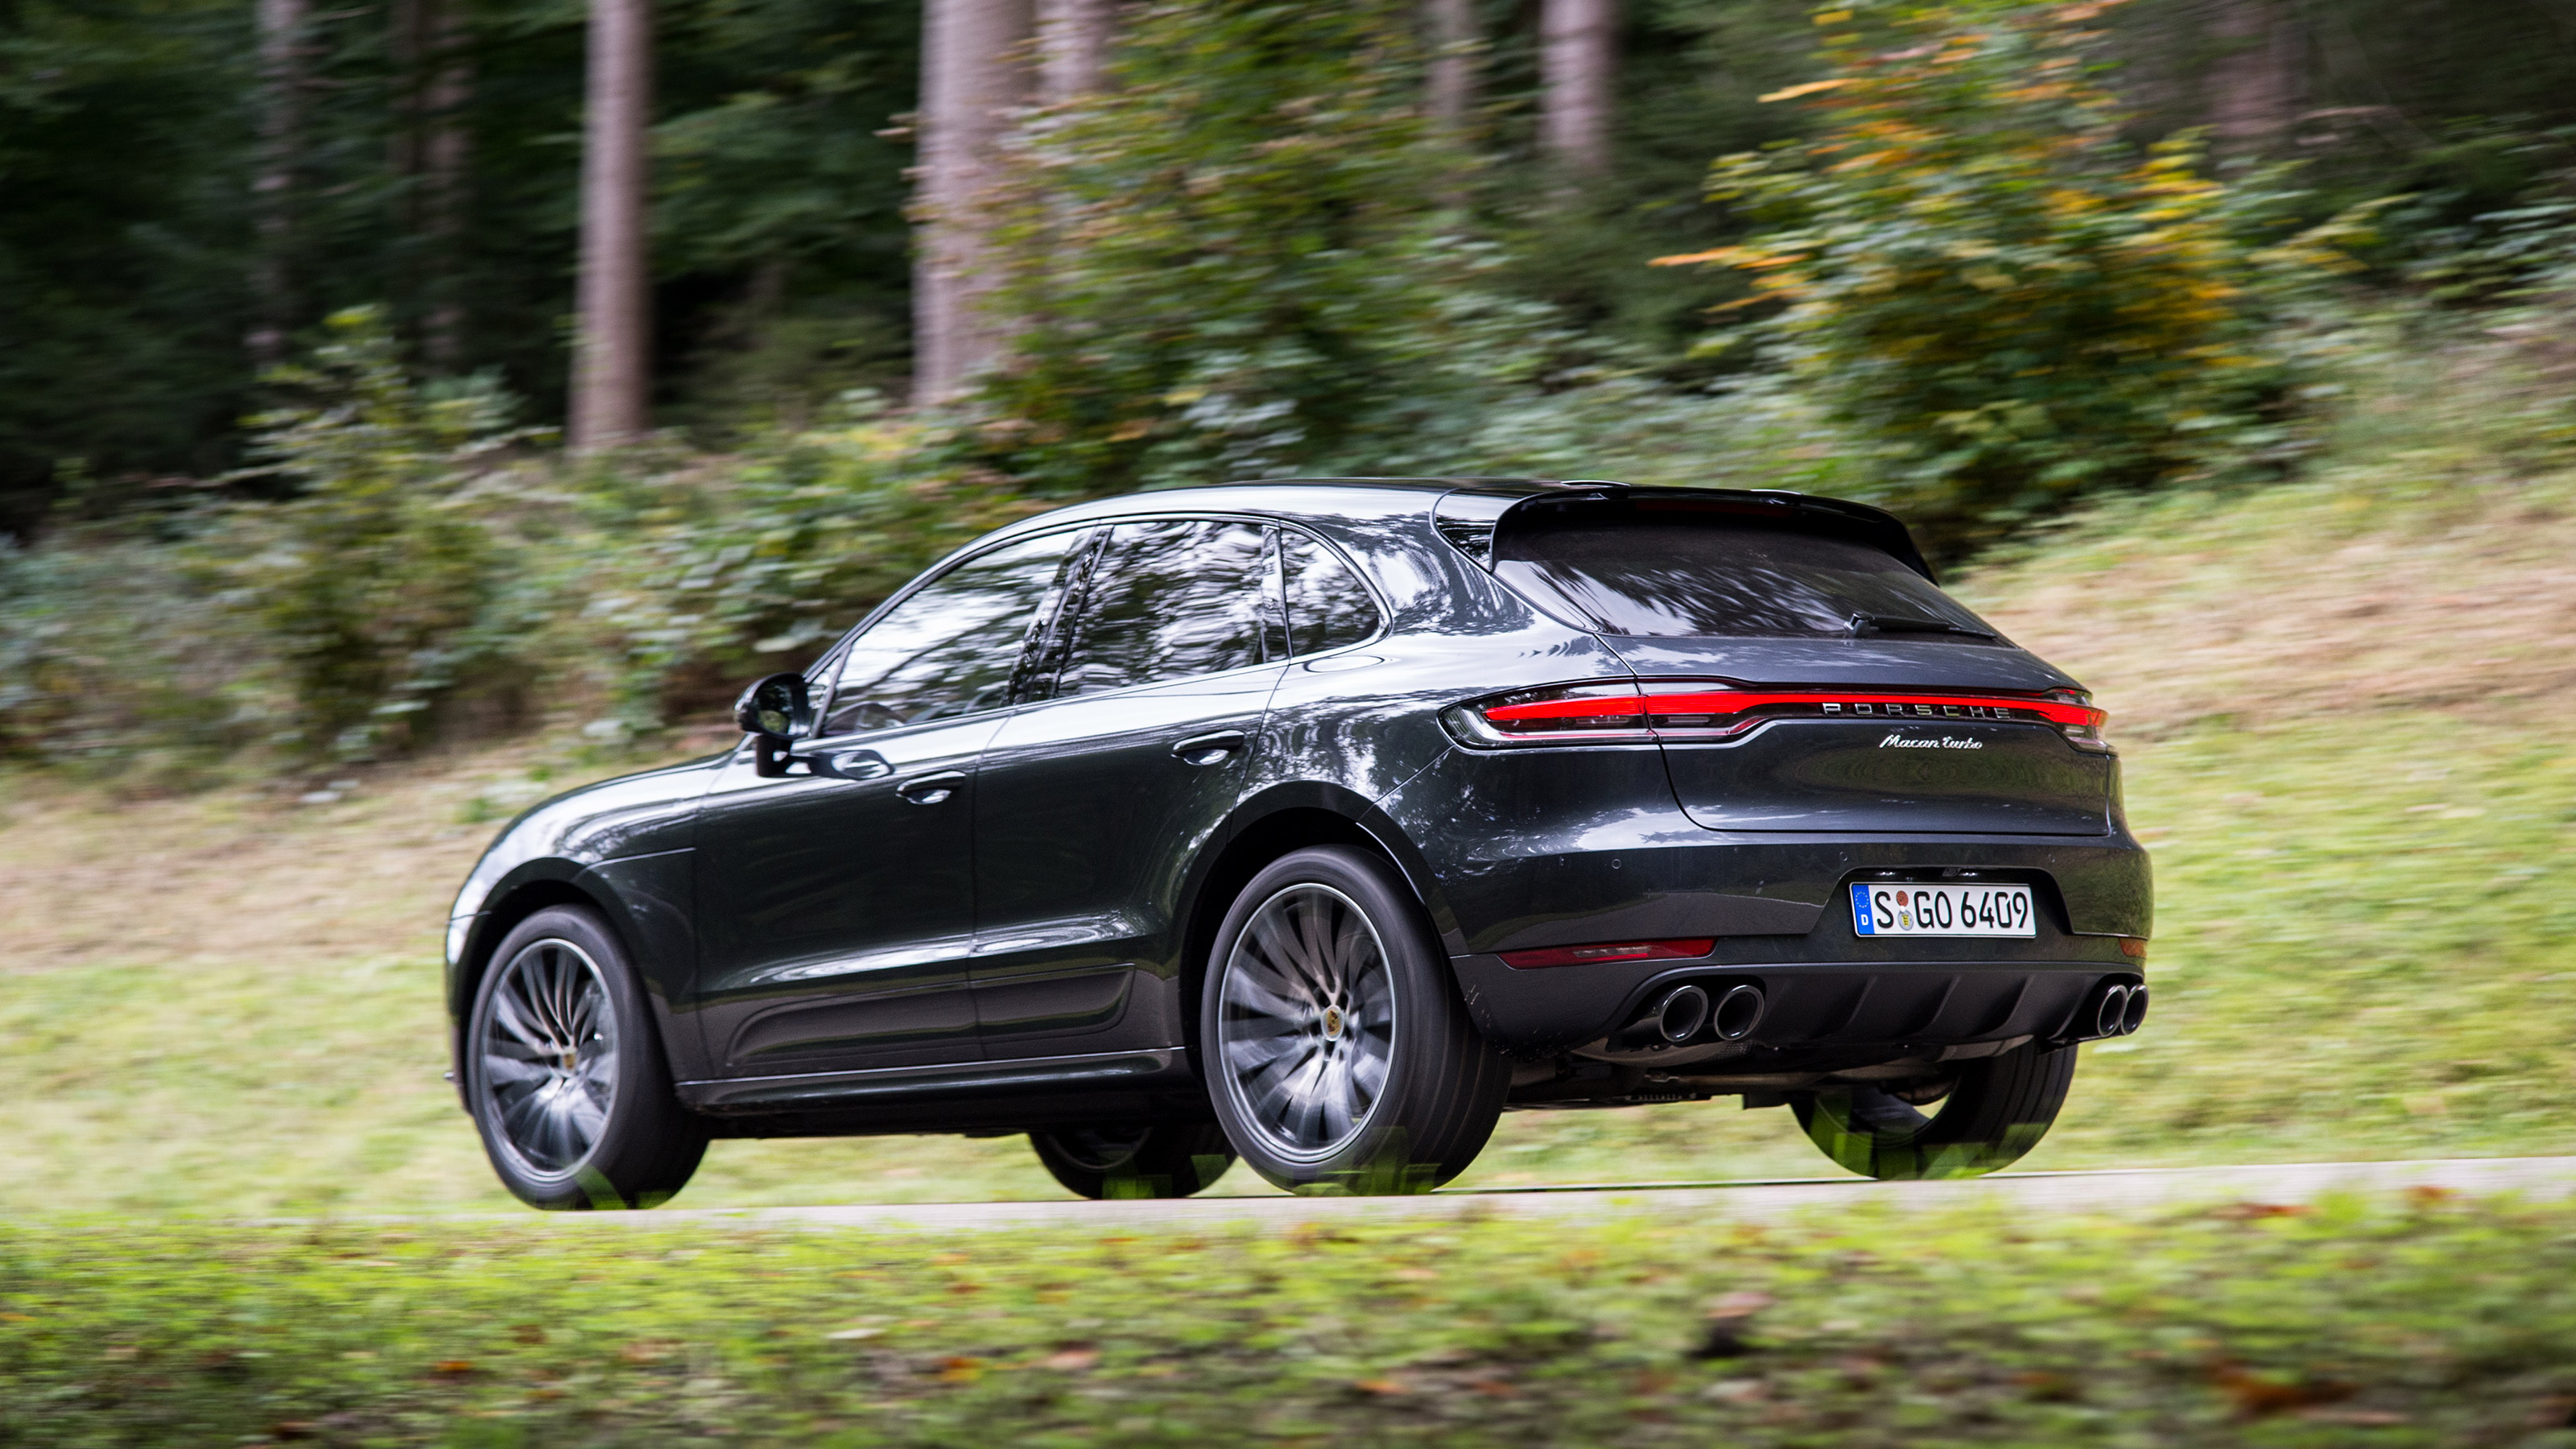 Porsche Macan Review Prices Specs And 0 60 Time Evo